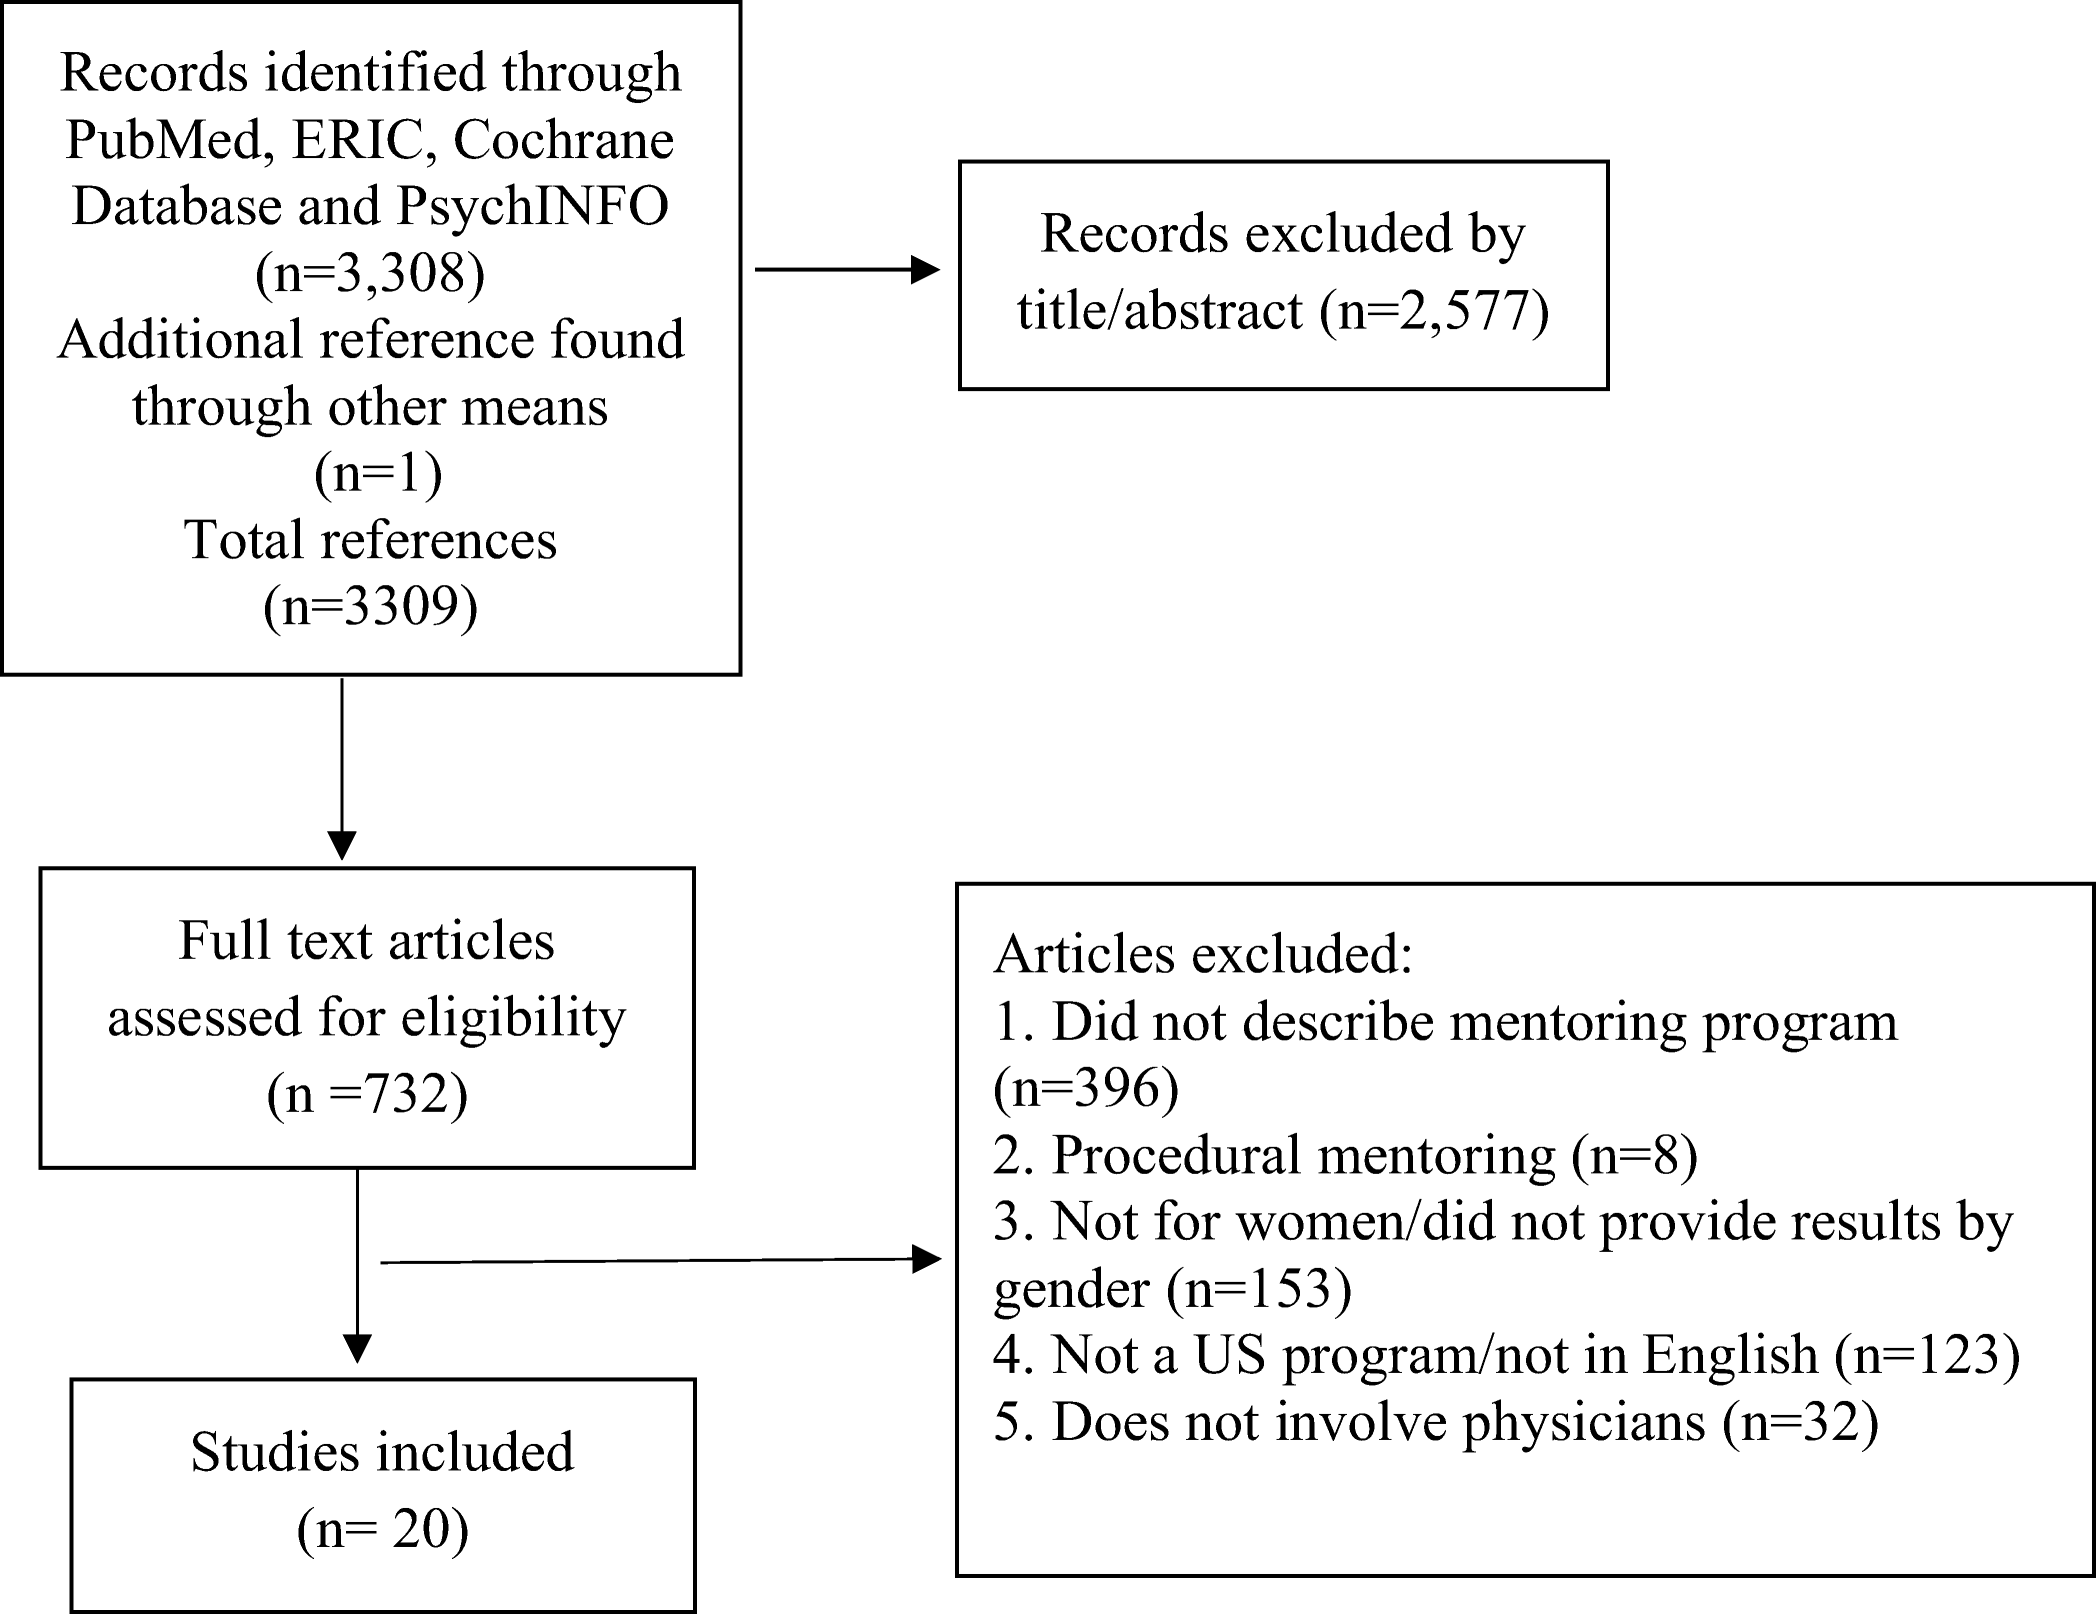 Mentorship of Women in Academic Medicine: a Systematic